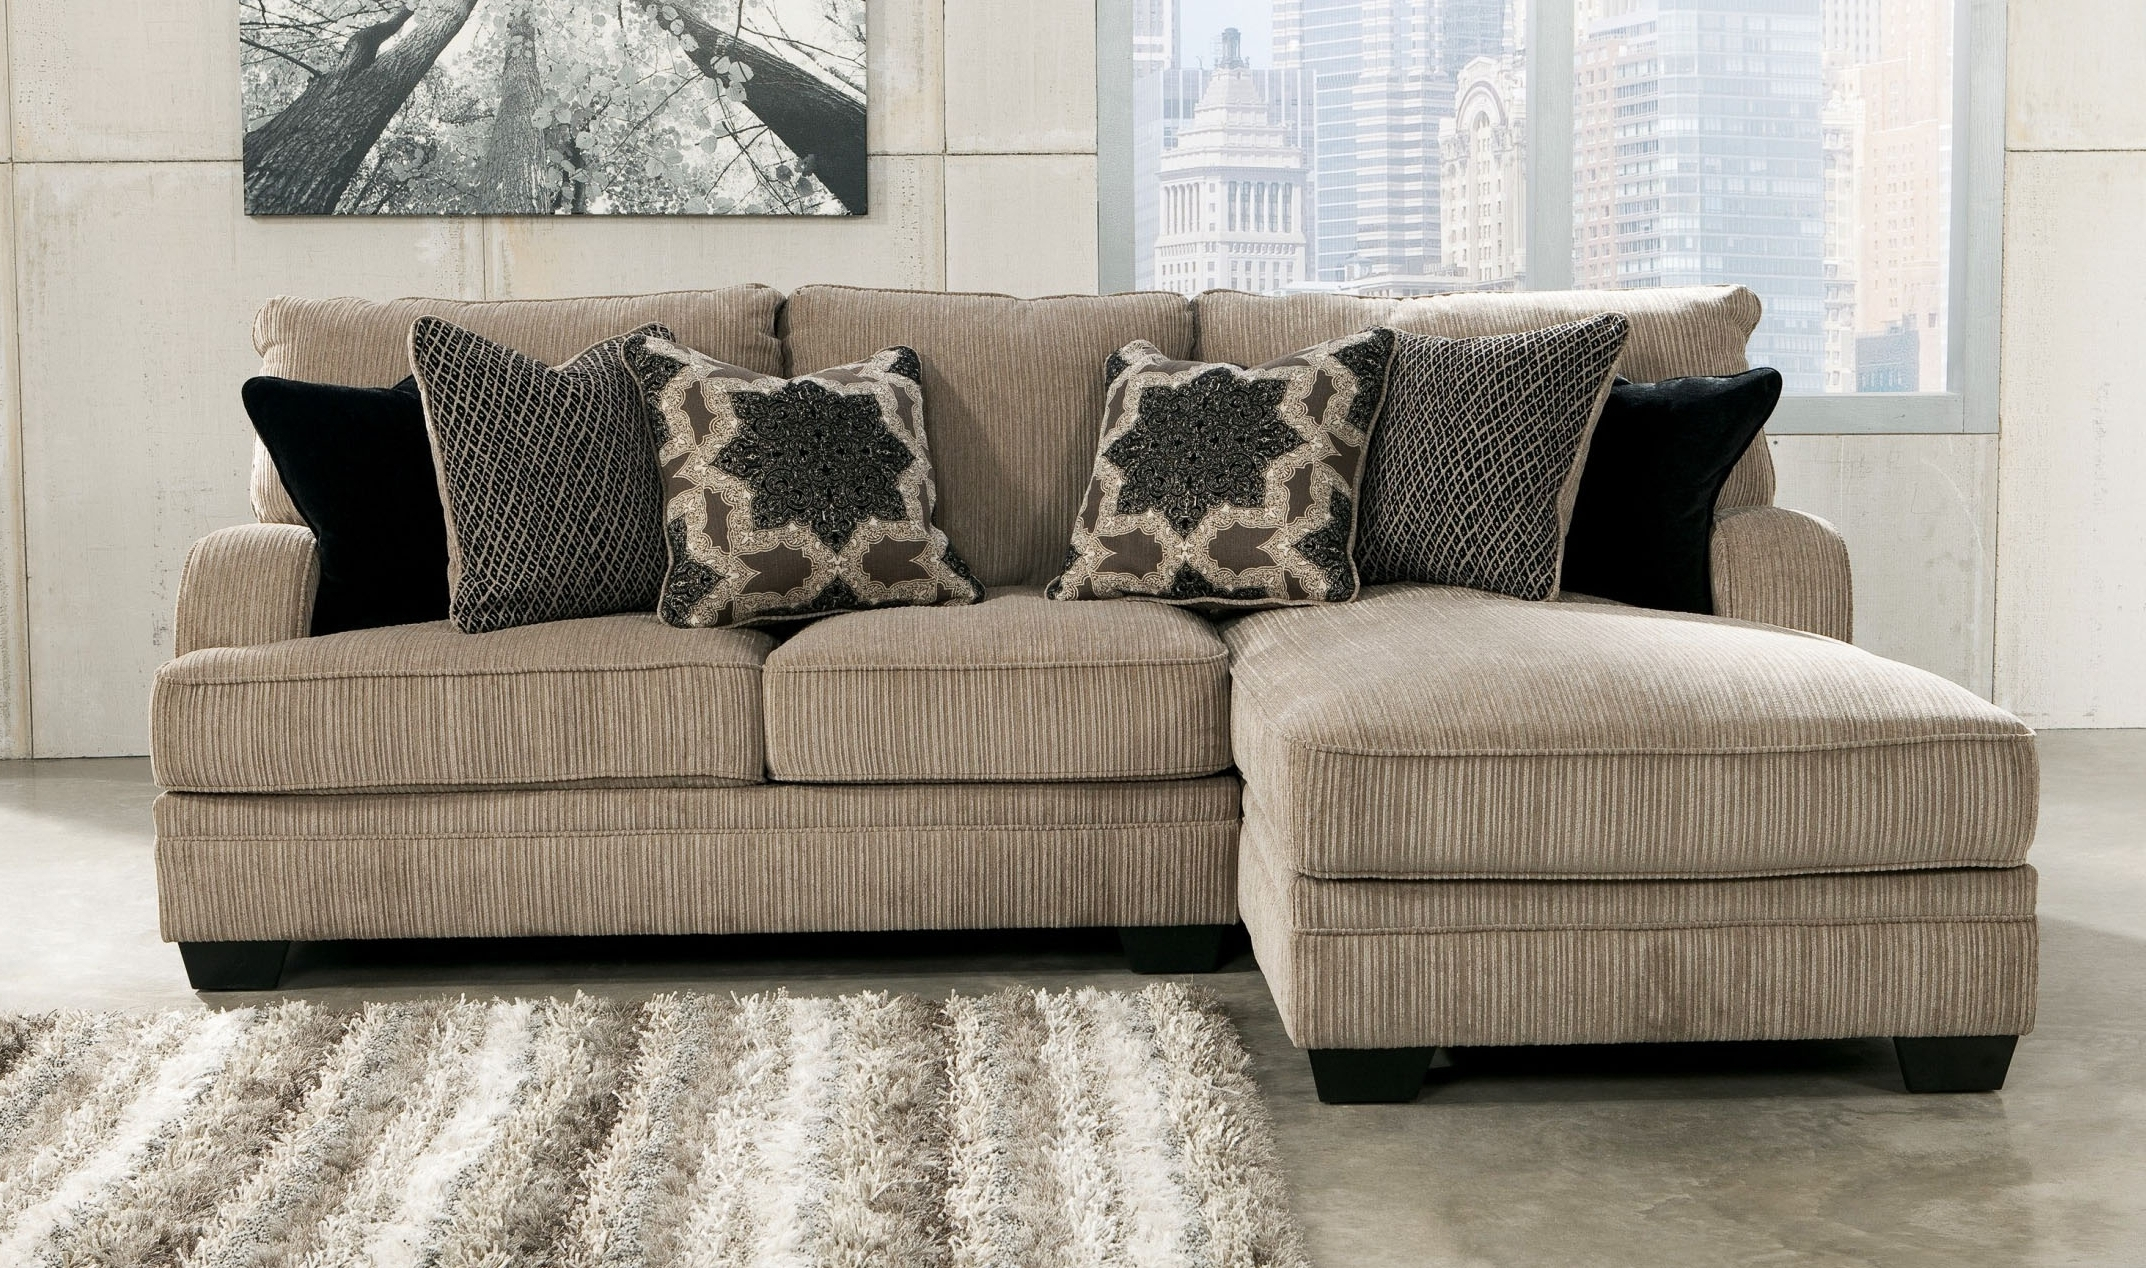 Inexpensive Sectional Sofas For Small Spaces Inside Well Known Stylish Inexpensive Sectional Sofas For Small Spaces (View 10 of 20)